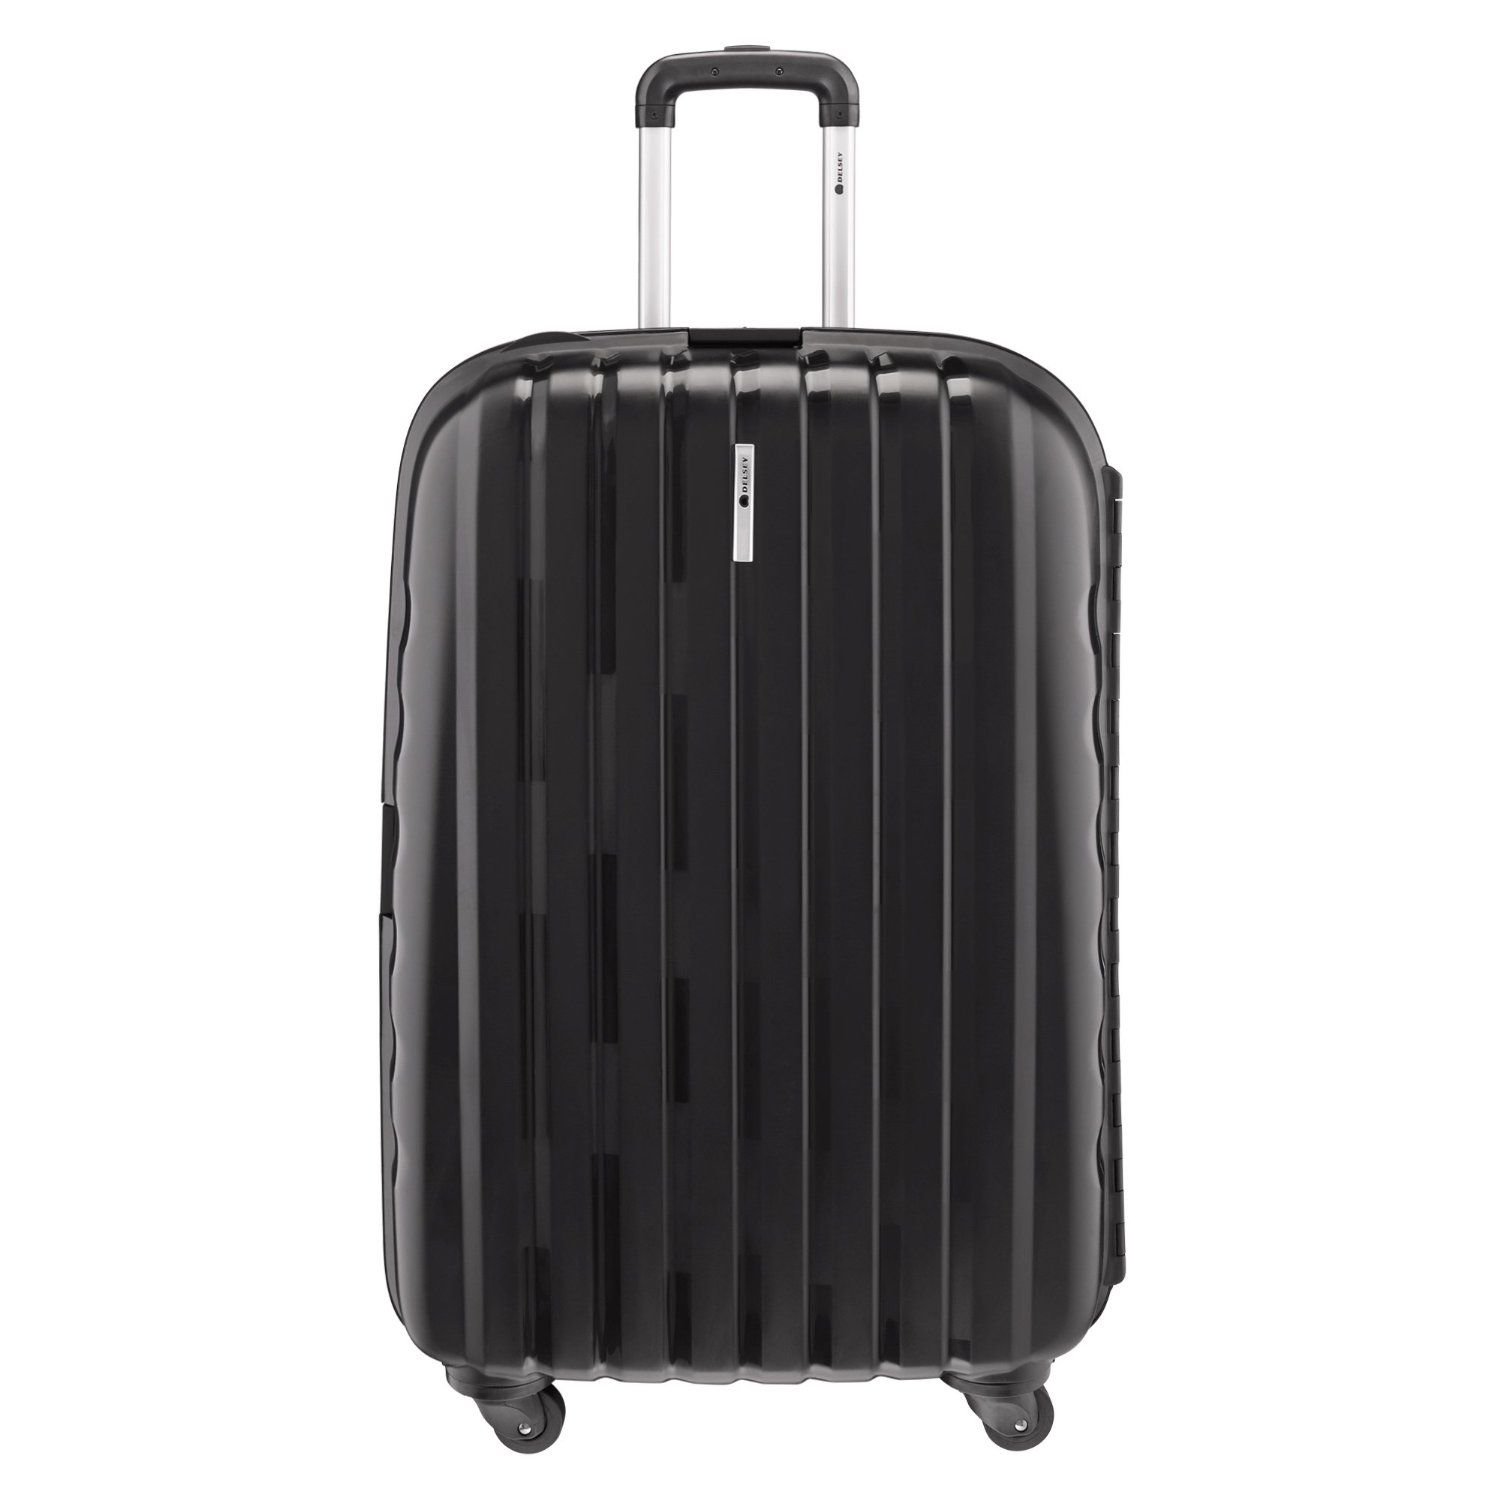 Delsey Luggage Helium Colours Lightweight Hardside 4 Wheel Spinner Black 30 Inch Delsey Luggage Delsey Luggage